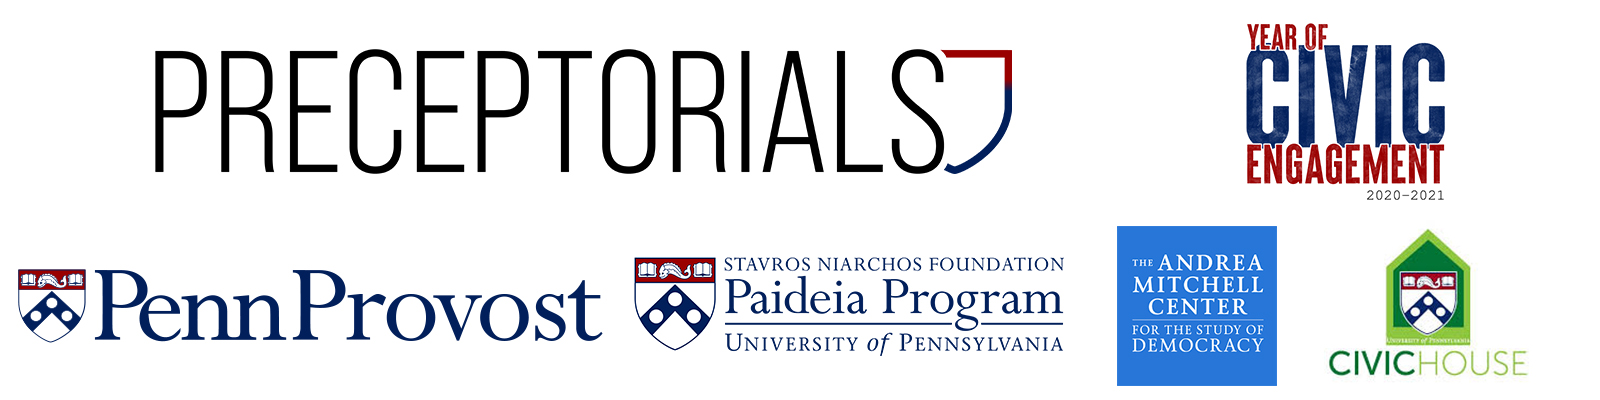 Preceptorials, Year of Civic Engagement, Penn Provost, SNF Paideia Program, Andrea Mitchell Center, and Civic House logos